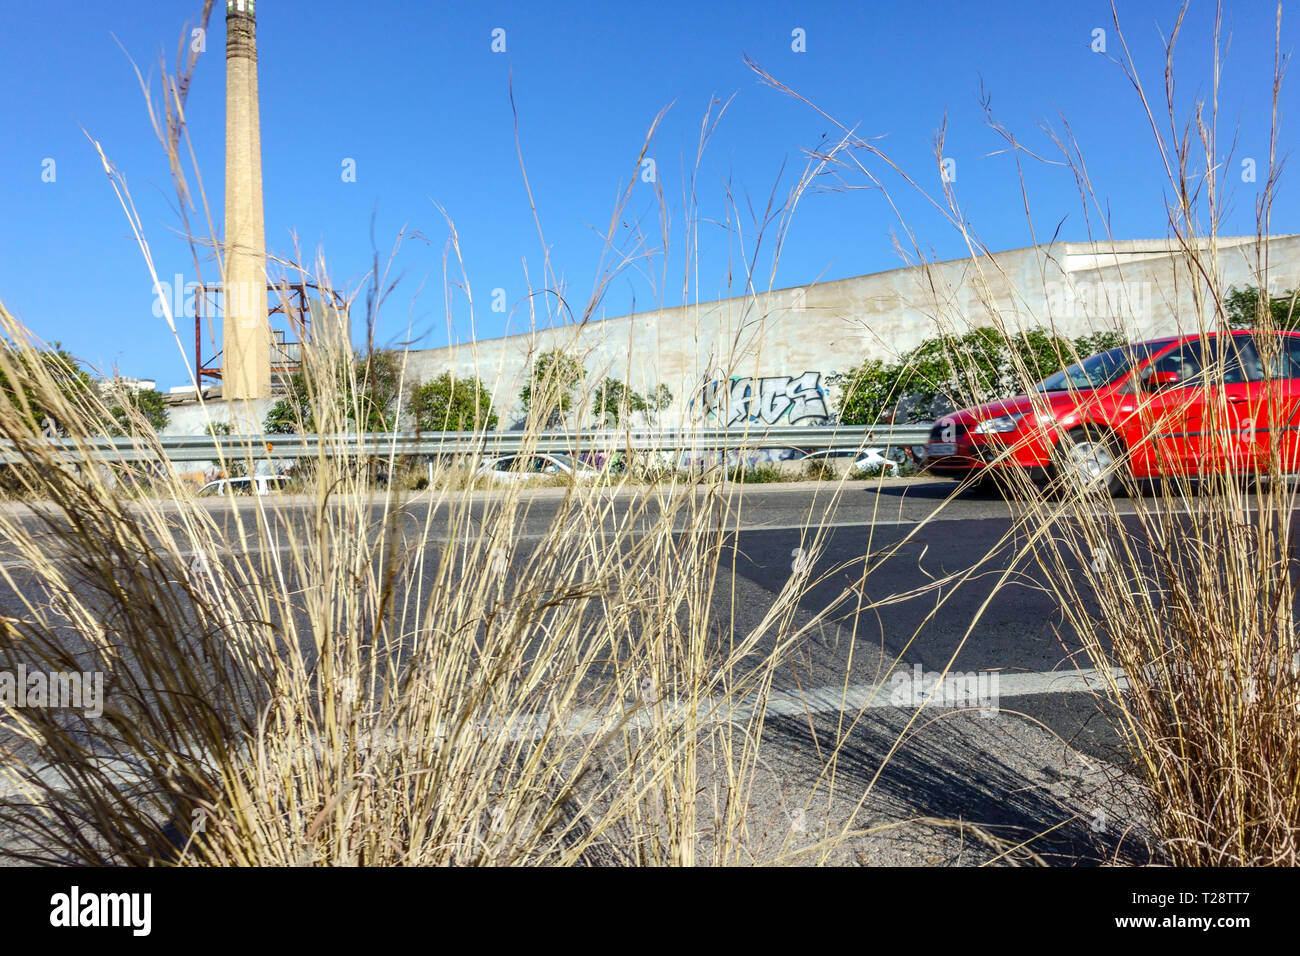 Road with red car, grass and chimney on the periphery, Spanish still life concept, Spain - Stock Image